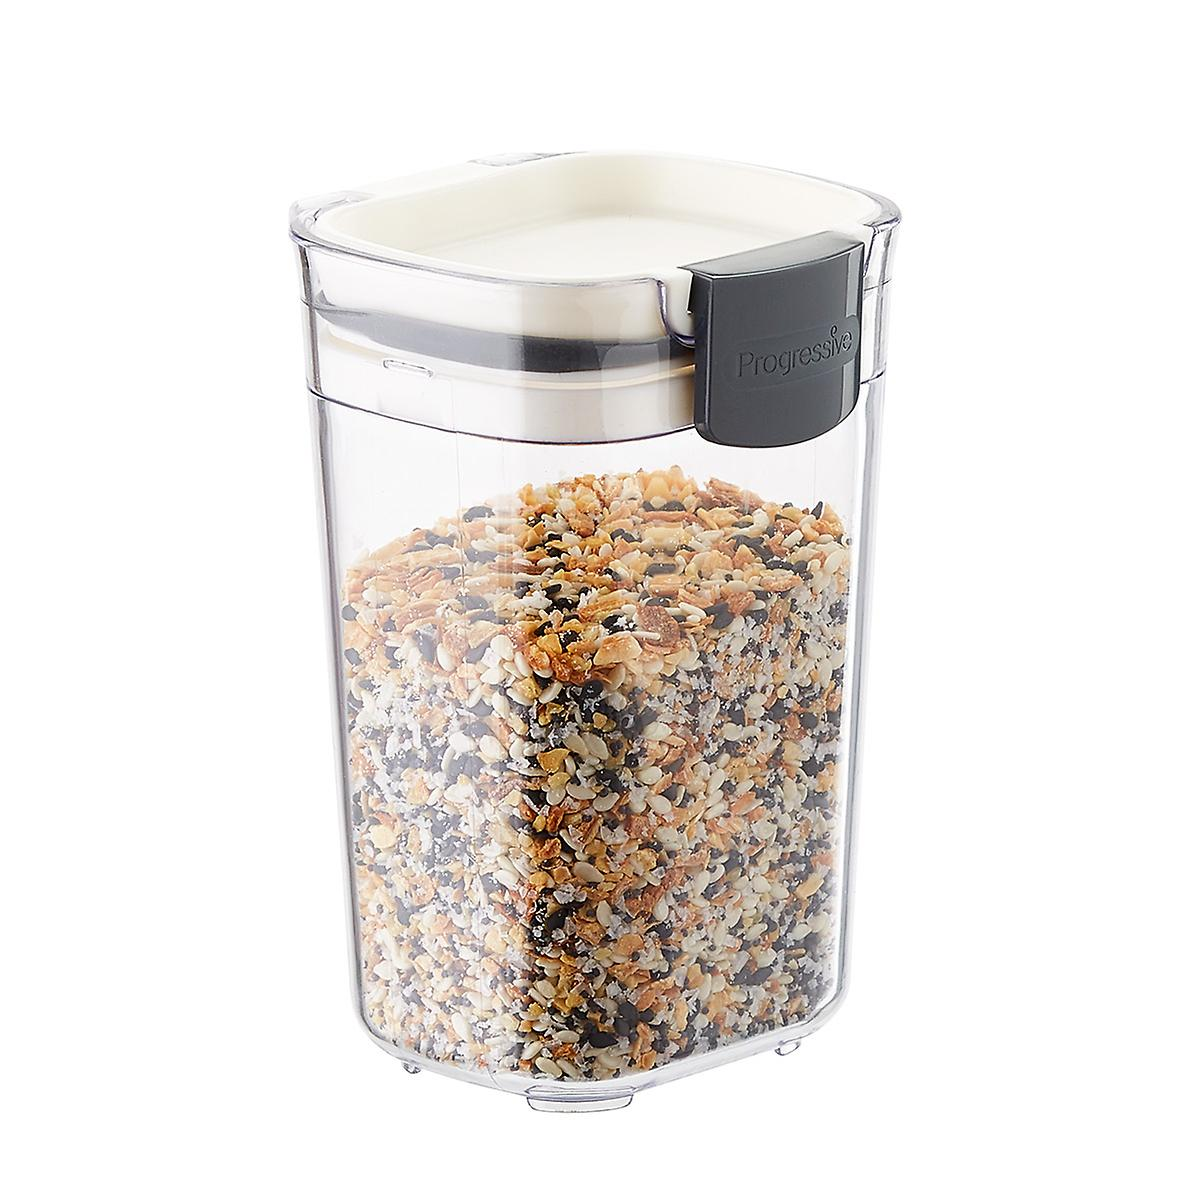 ProKeeper 5 oz. Seasoning Container